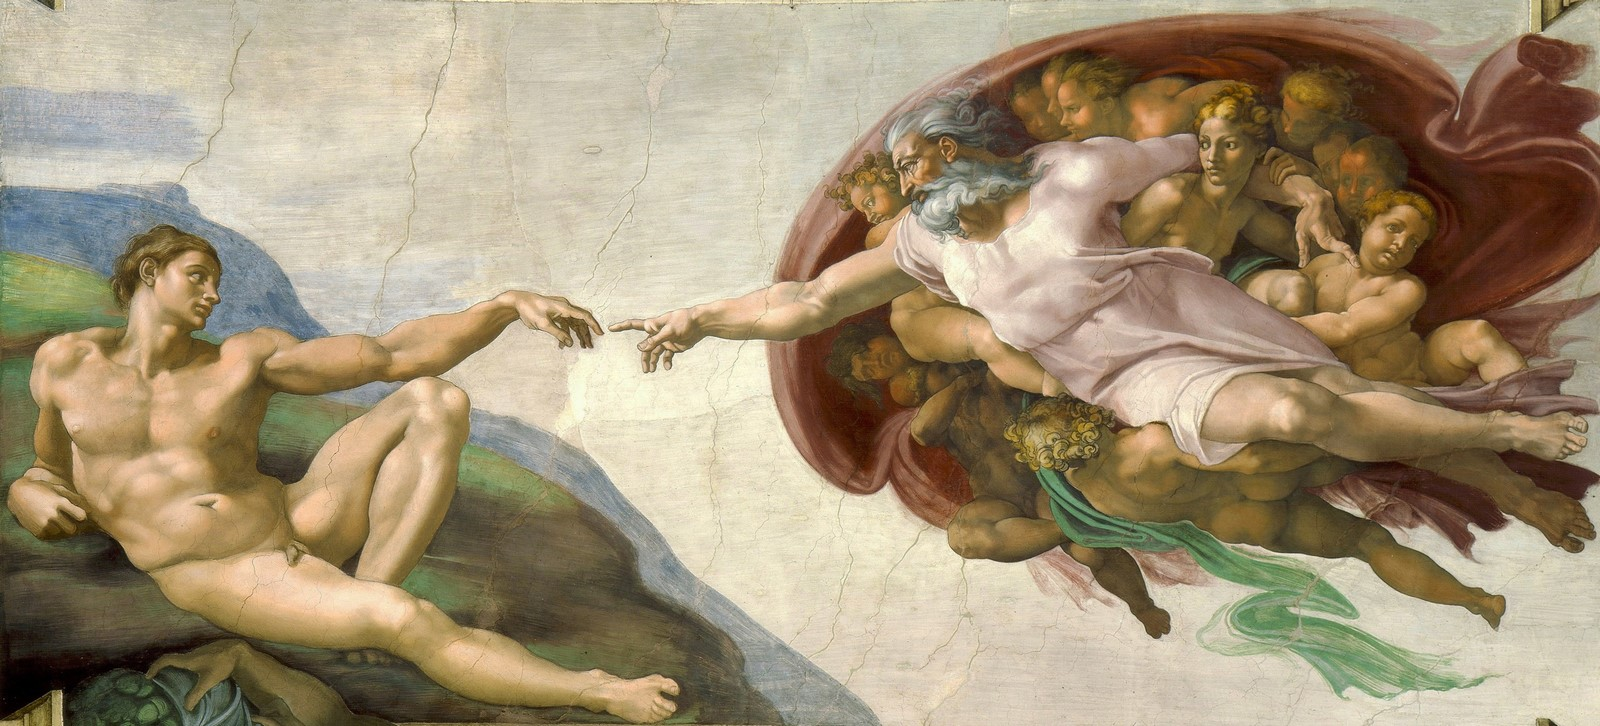 10 Things you didn't know about Michelangelo - Sheet5